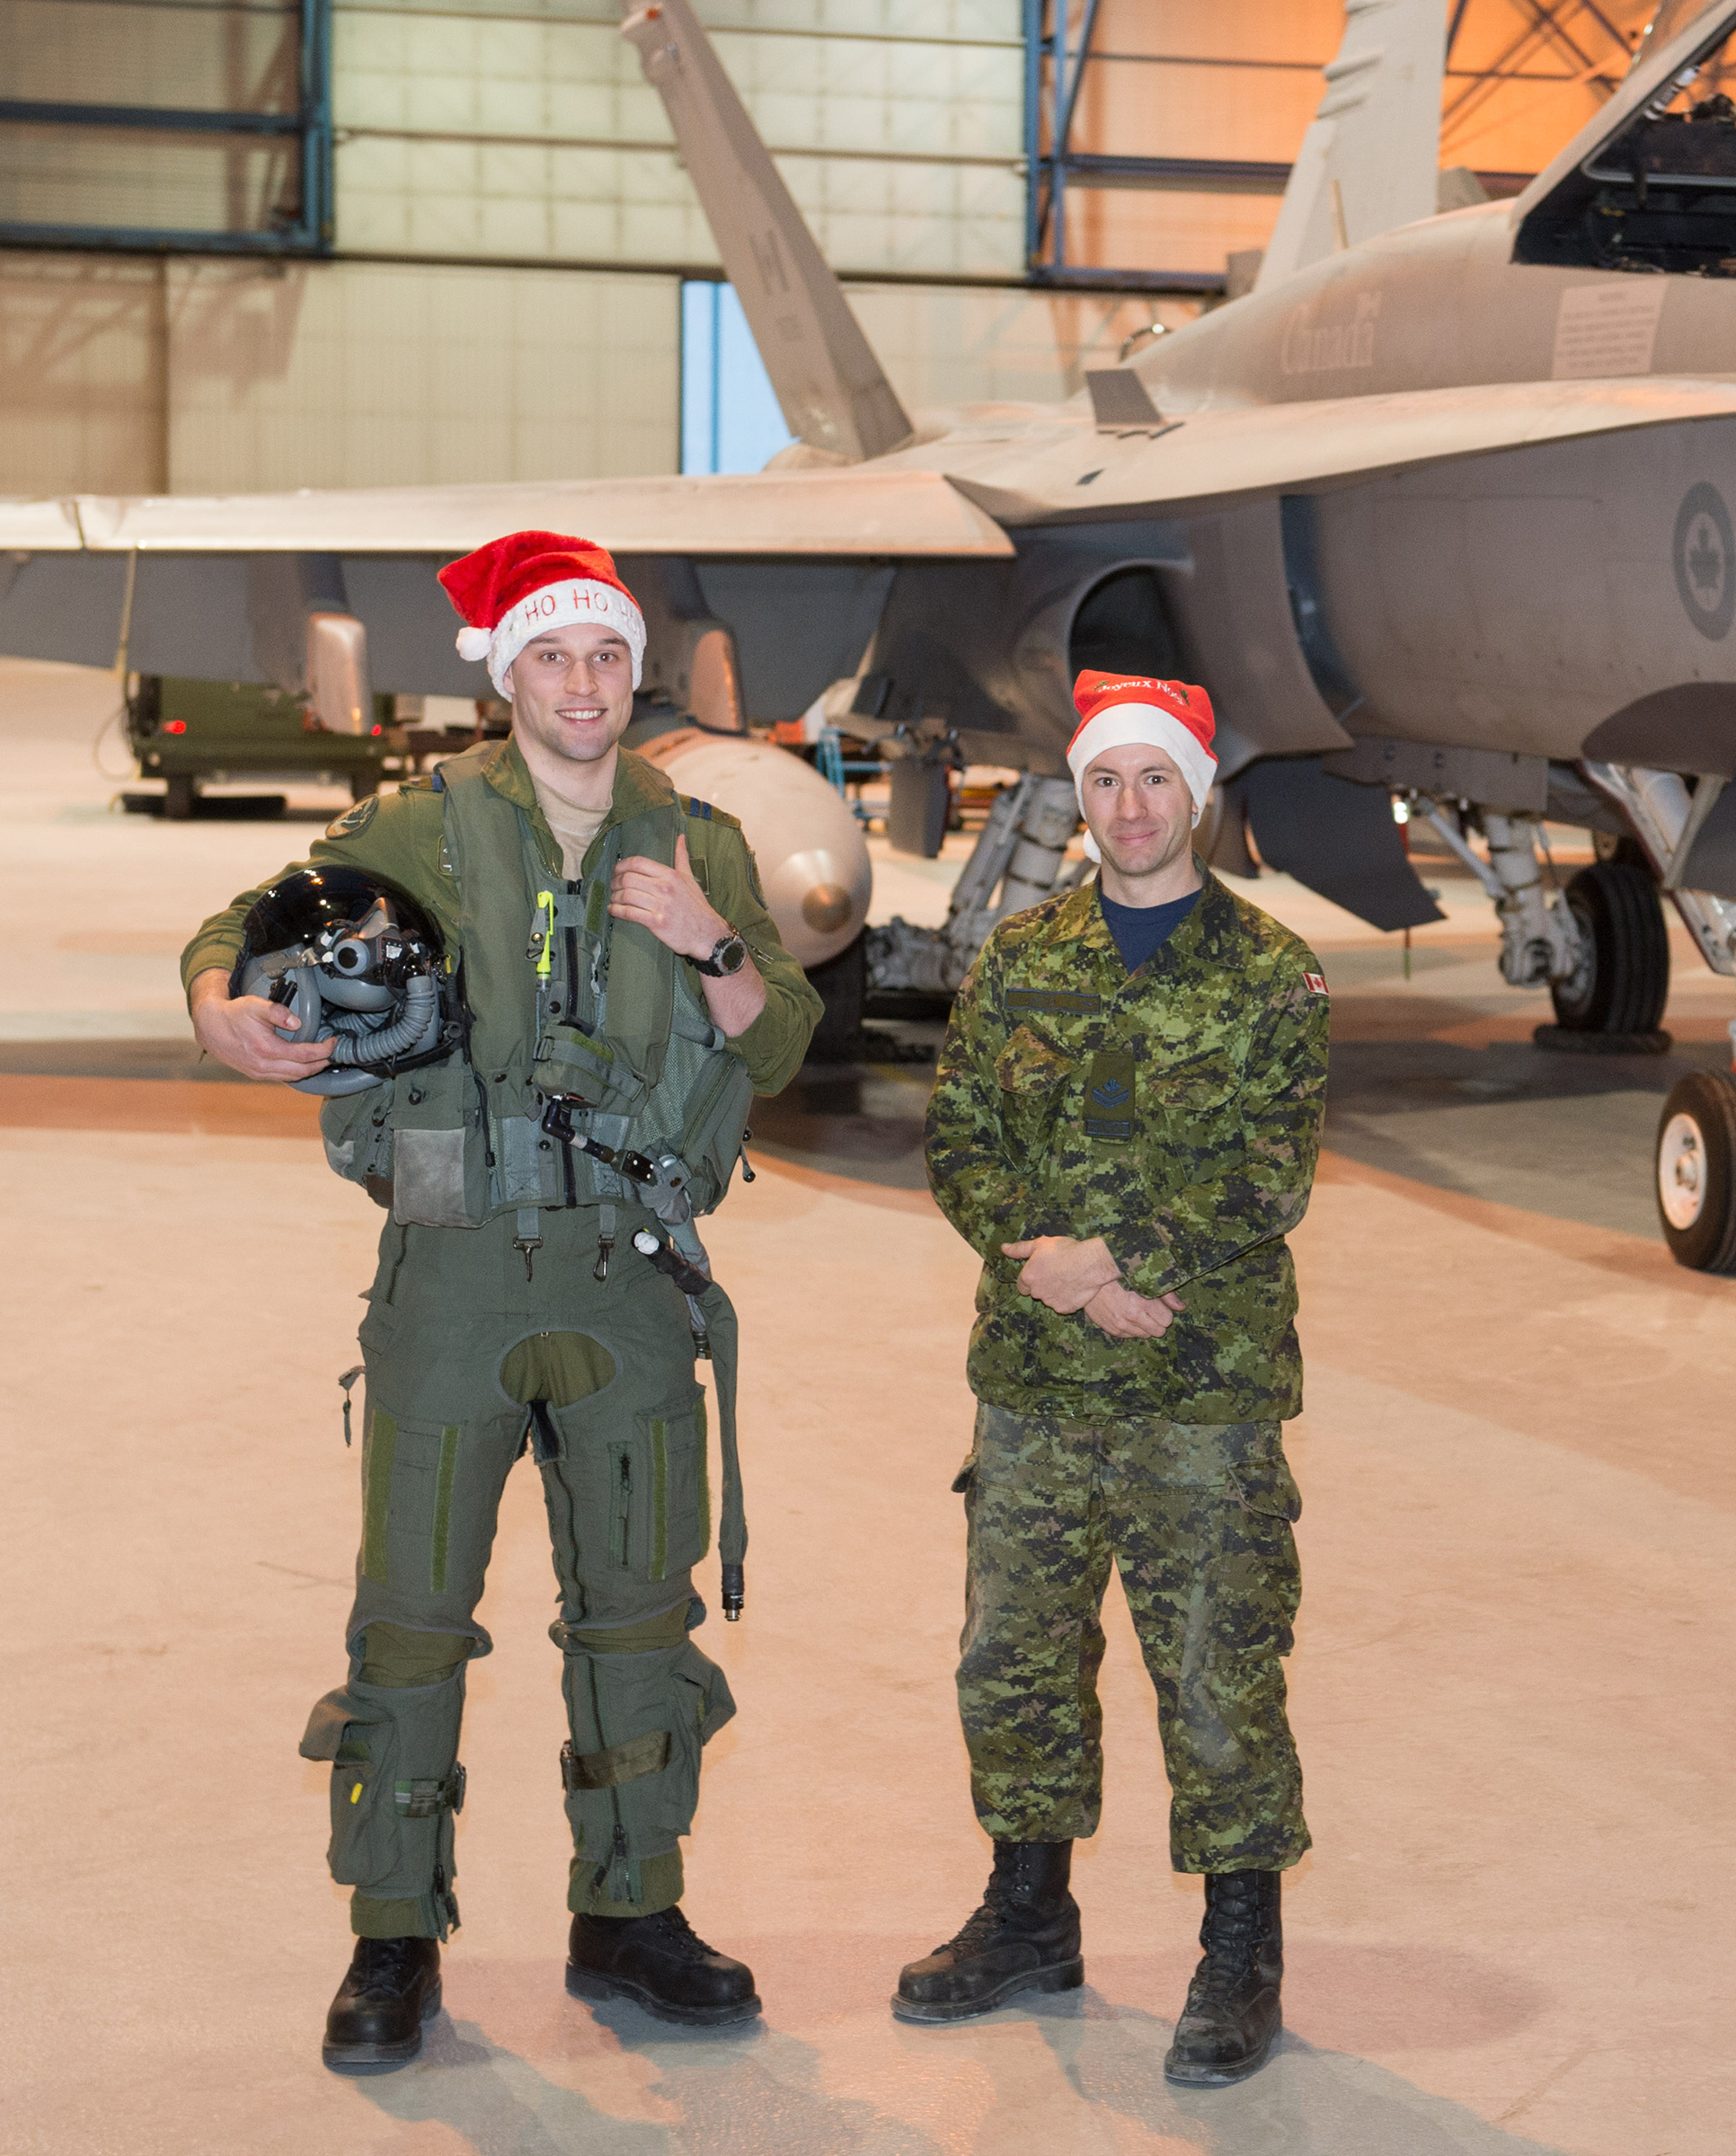 At 3 Wing Bagotville, Quebec, CF-188 Hornet pilot Captain Pierre-David Boivin, along with maintainer Master Corporal Marc-André David, are ready to escort Santa on his journey through North American airspace on December 24, 2017. Both are members of 433 Tactical Fighter Squadron. PHOTO: Leading Seaman Alex Roy, BN01-2015-0747-001